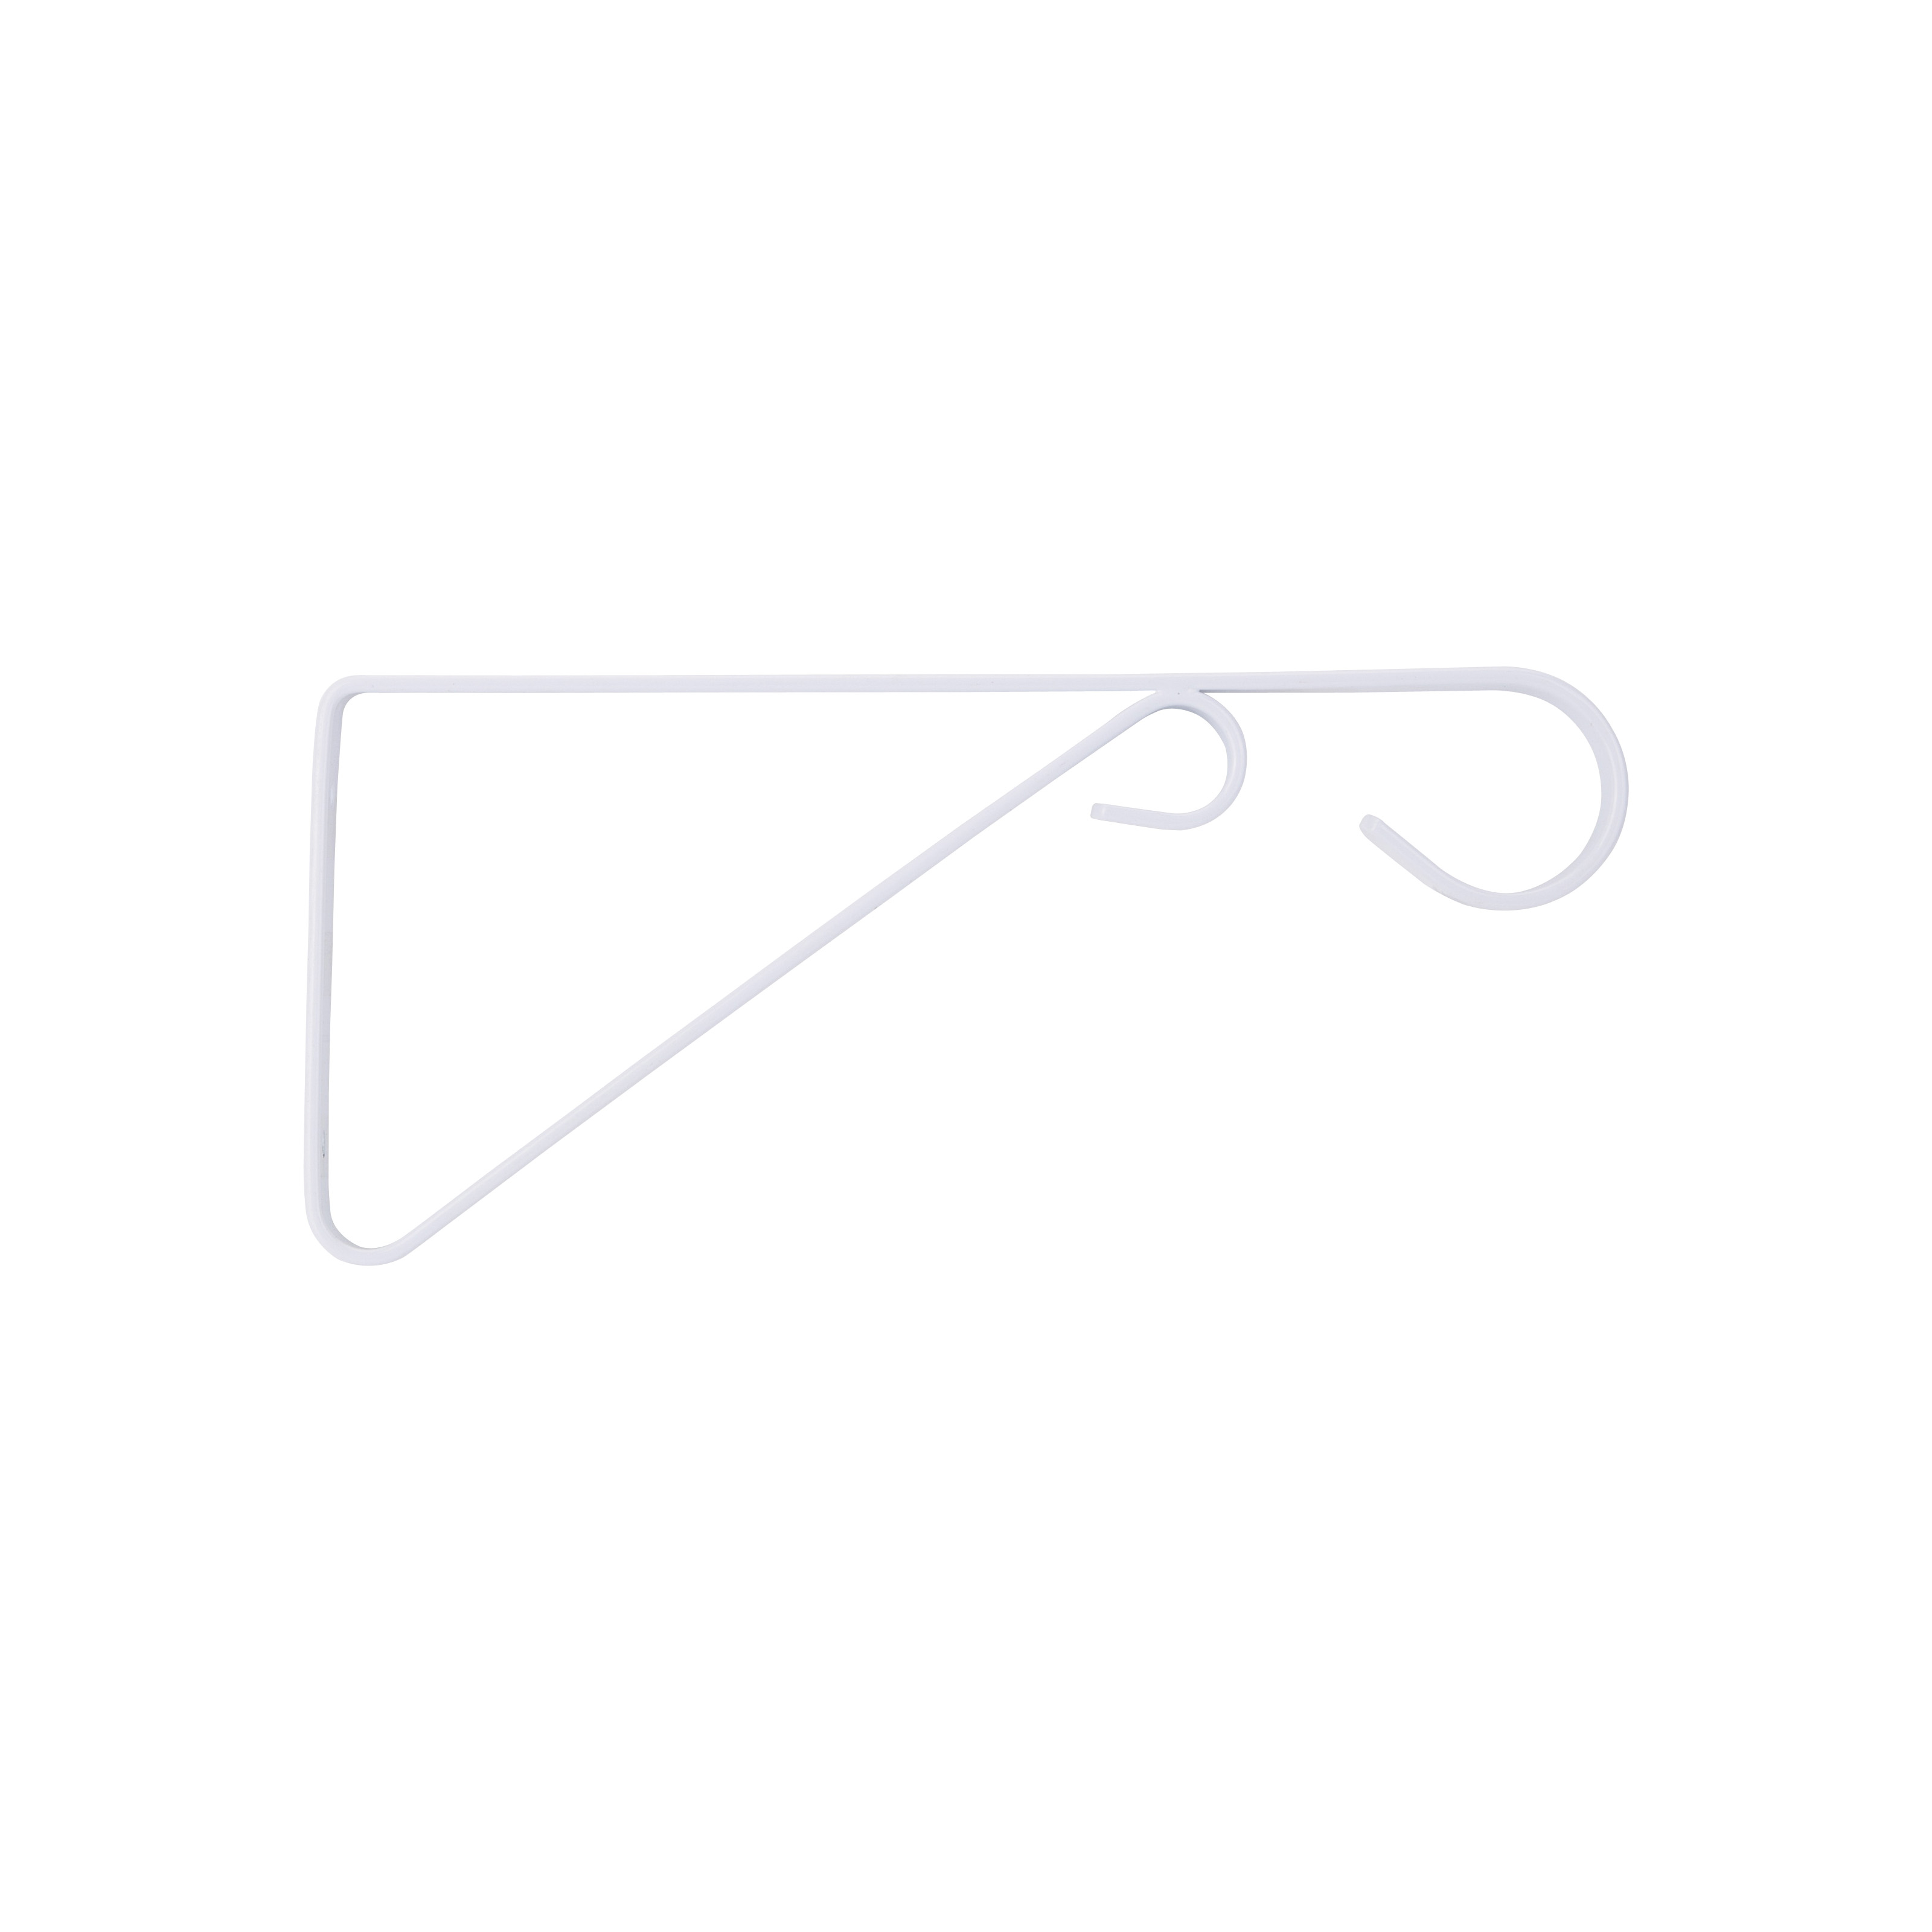 Picture of Landscapers Select GB0373L Hanging Plant Bracket, 9-5/8 L, Steel, White, White, Wall Mount Mounting